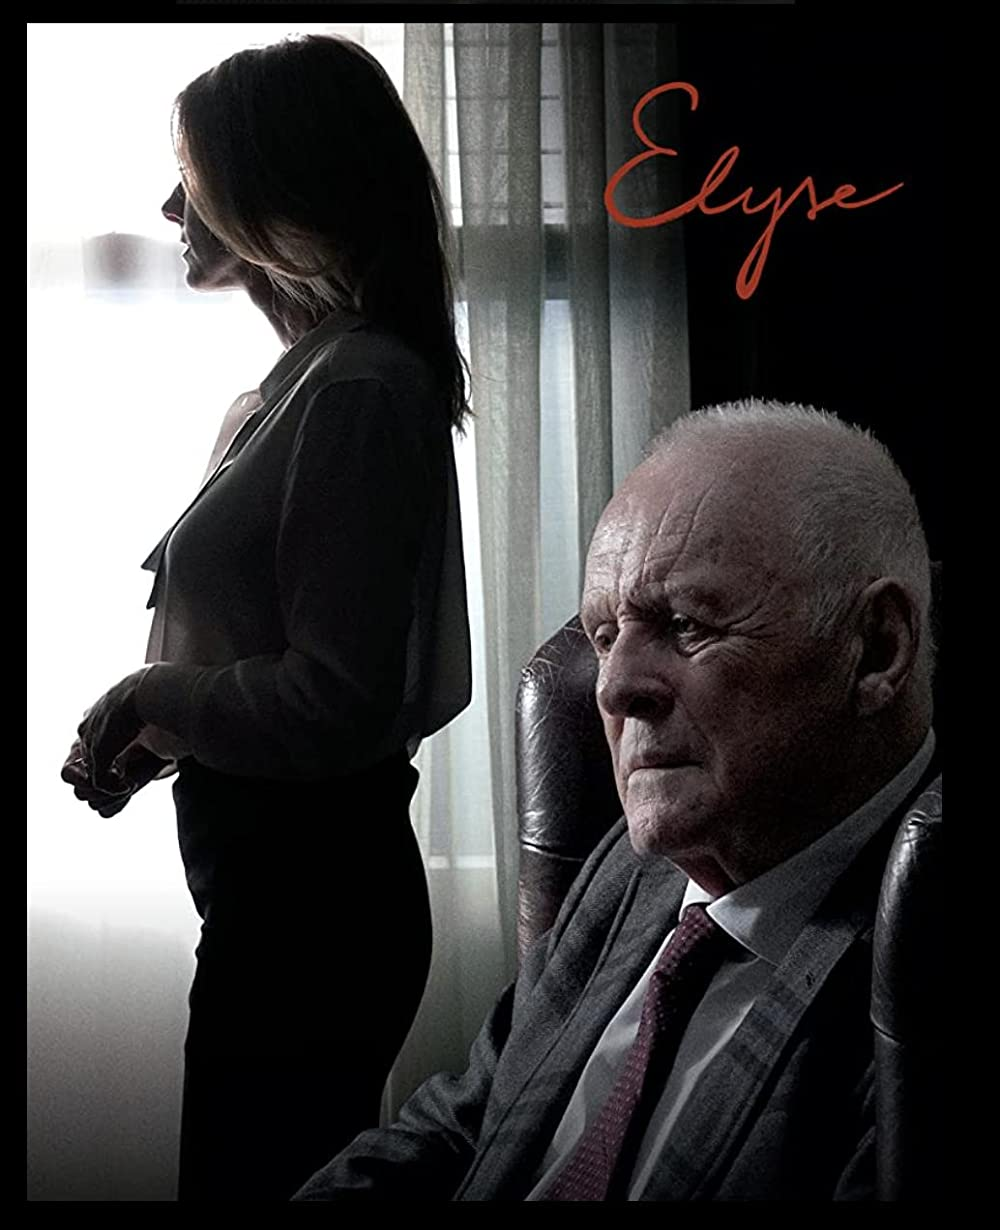 Elyse 2020 English 720p HDRip 795MB | 300MB Download